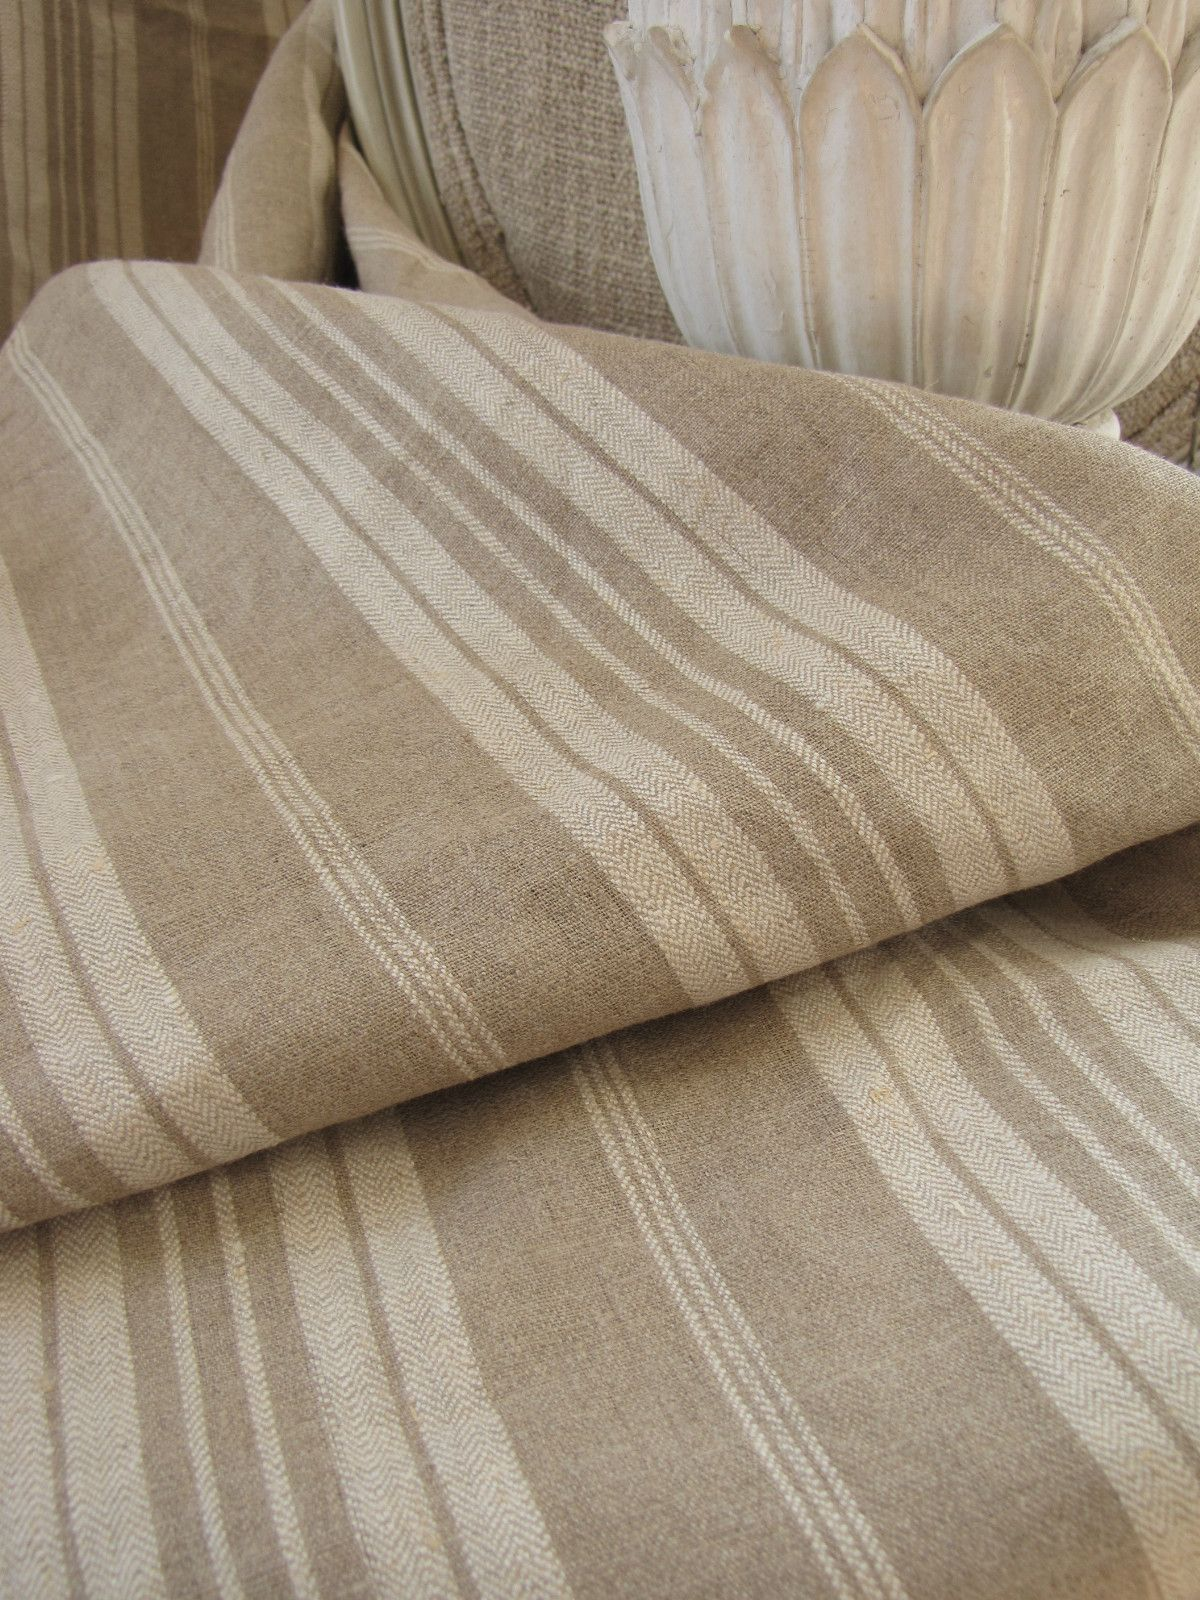 French Linen Ticking Stripe Fabric Fabric Finds Fabric